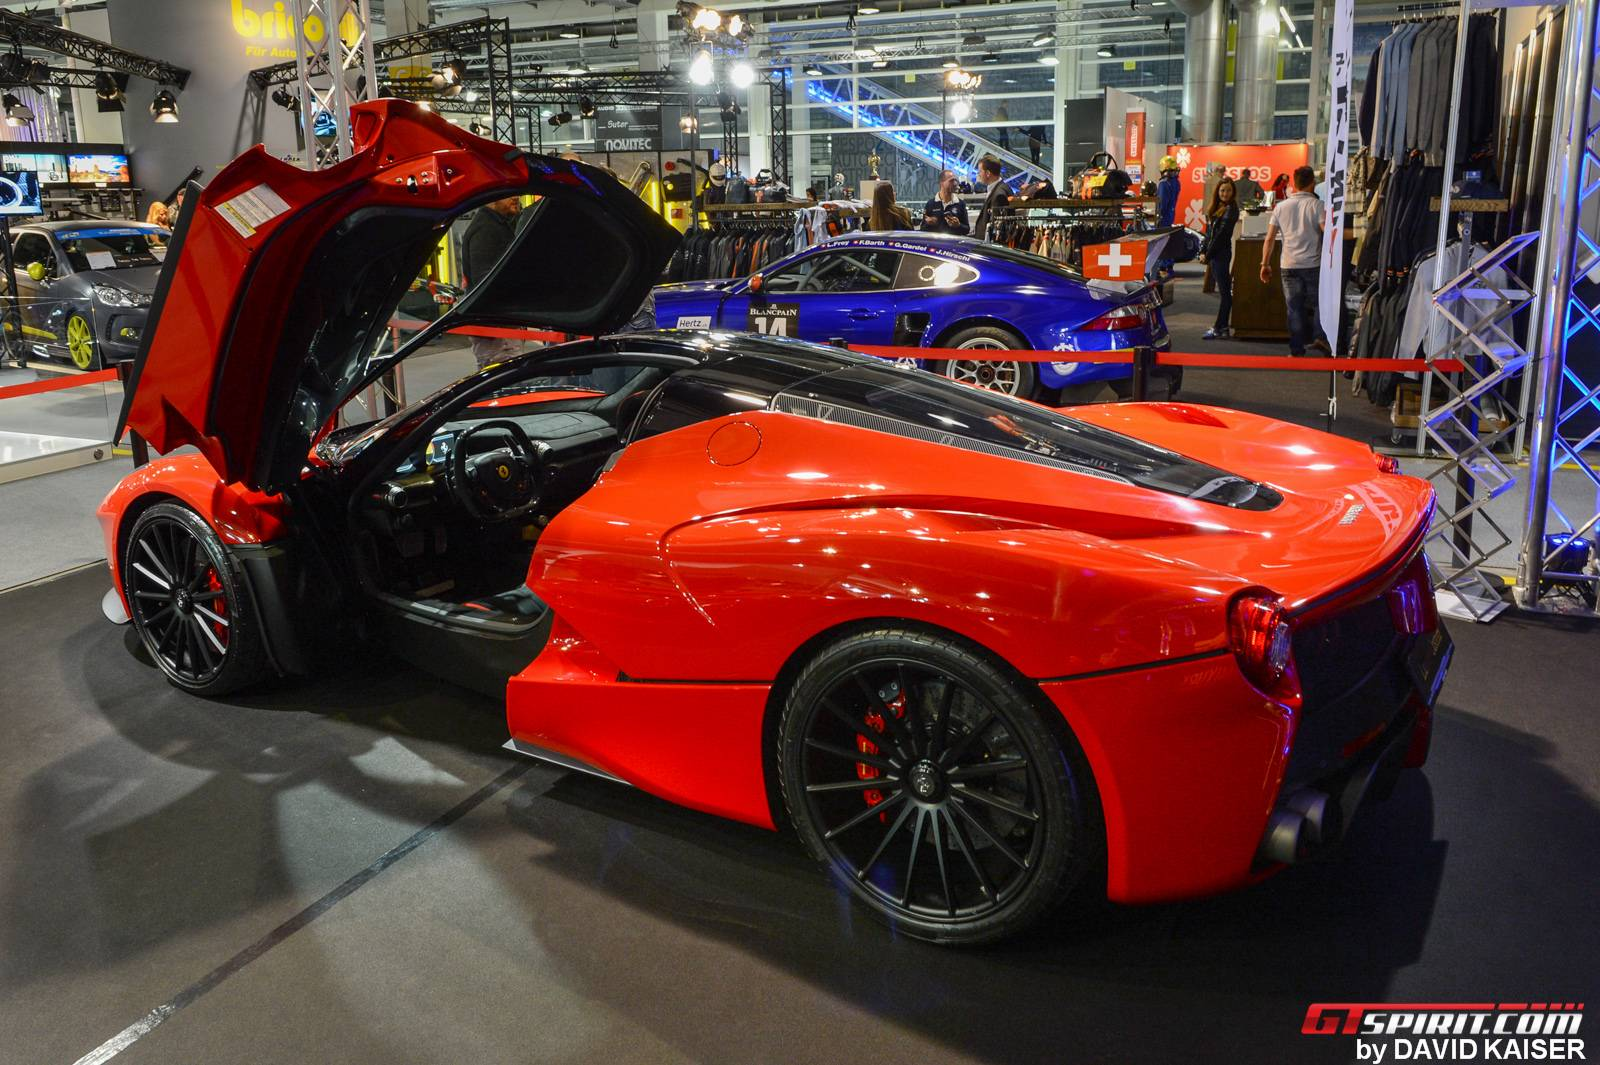 Auto Zurich Car Show 2015 Highlights Gtspirit